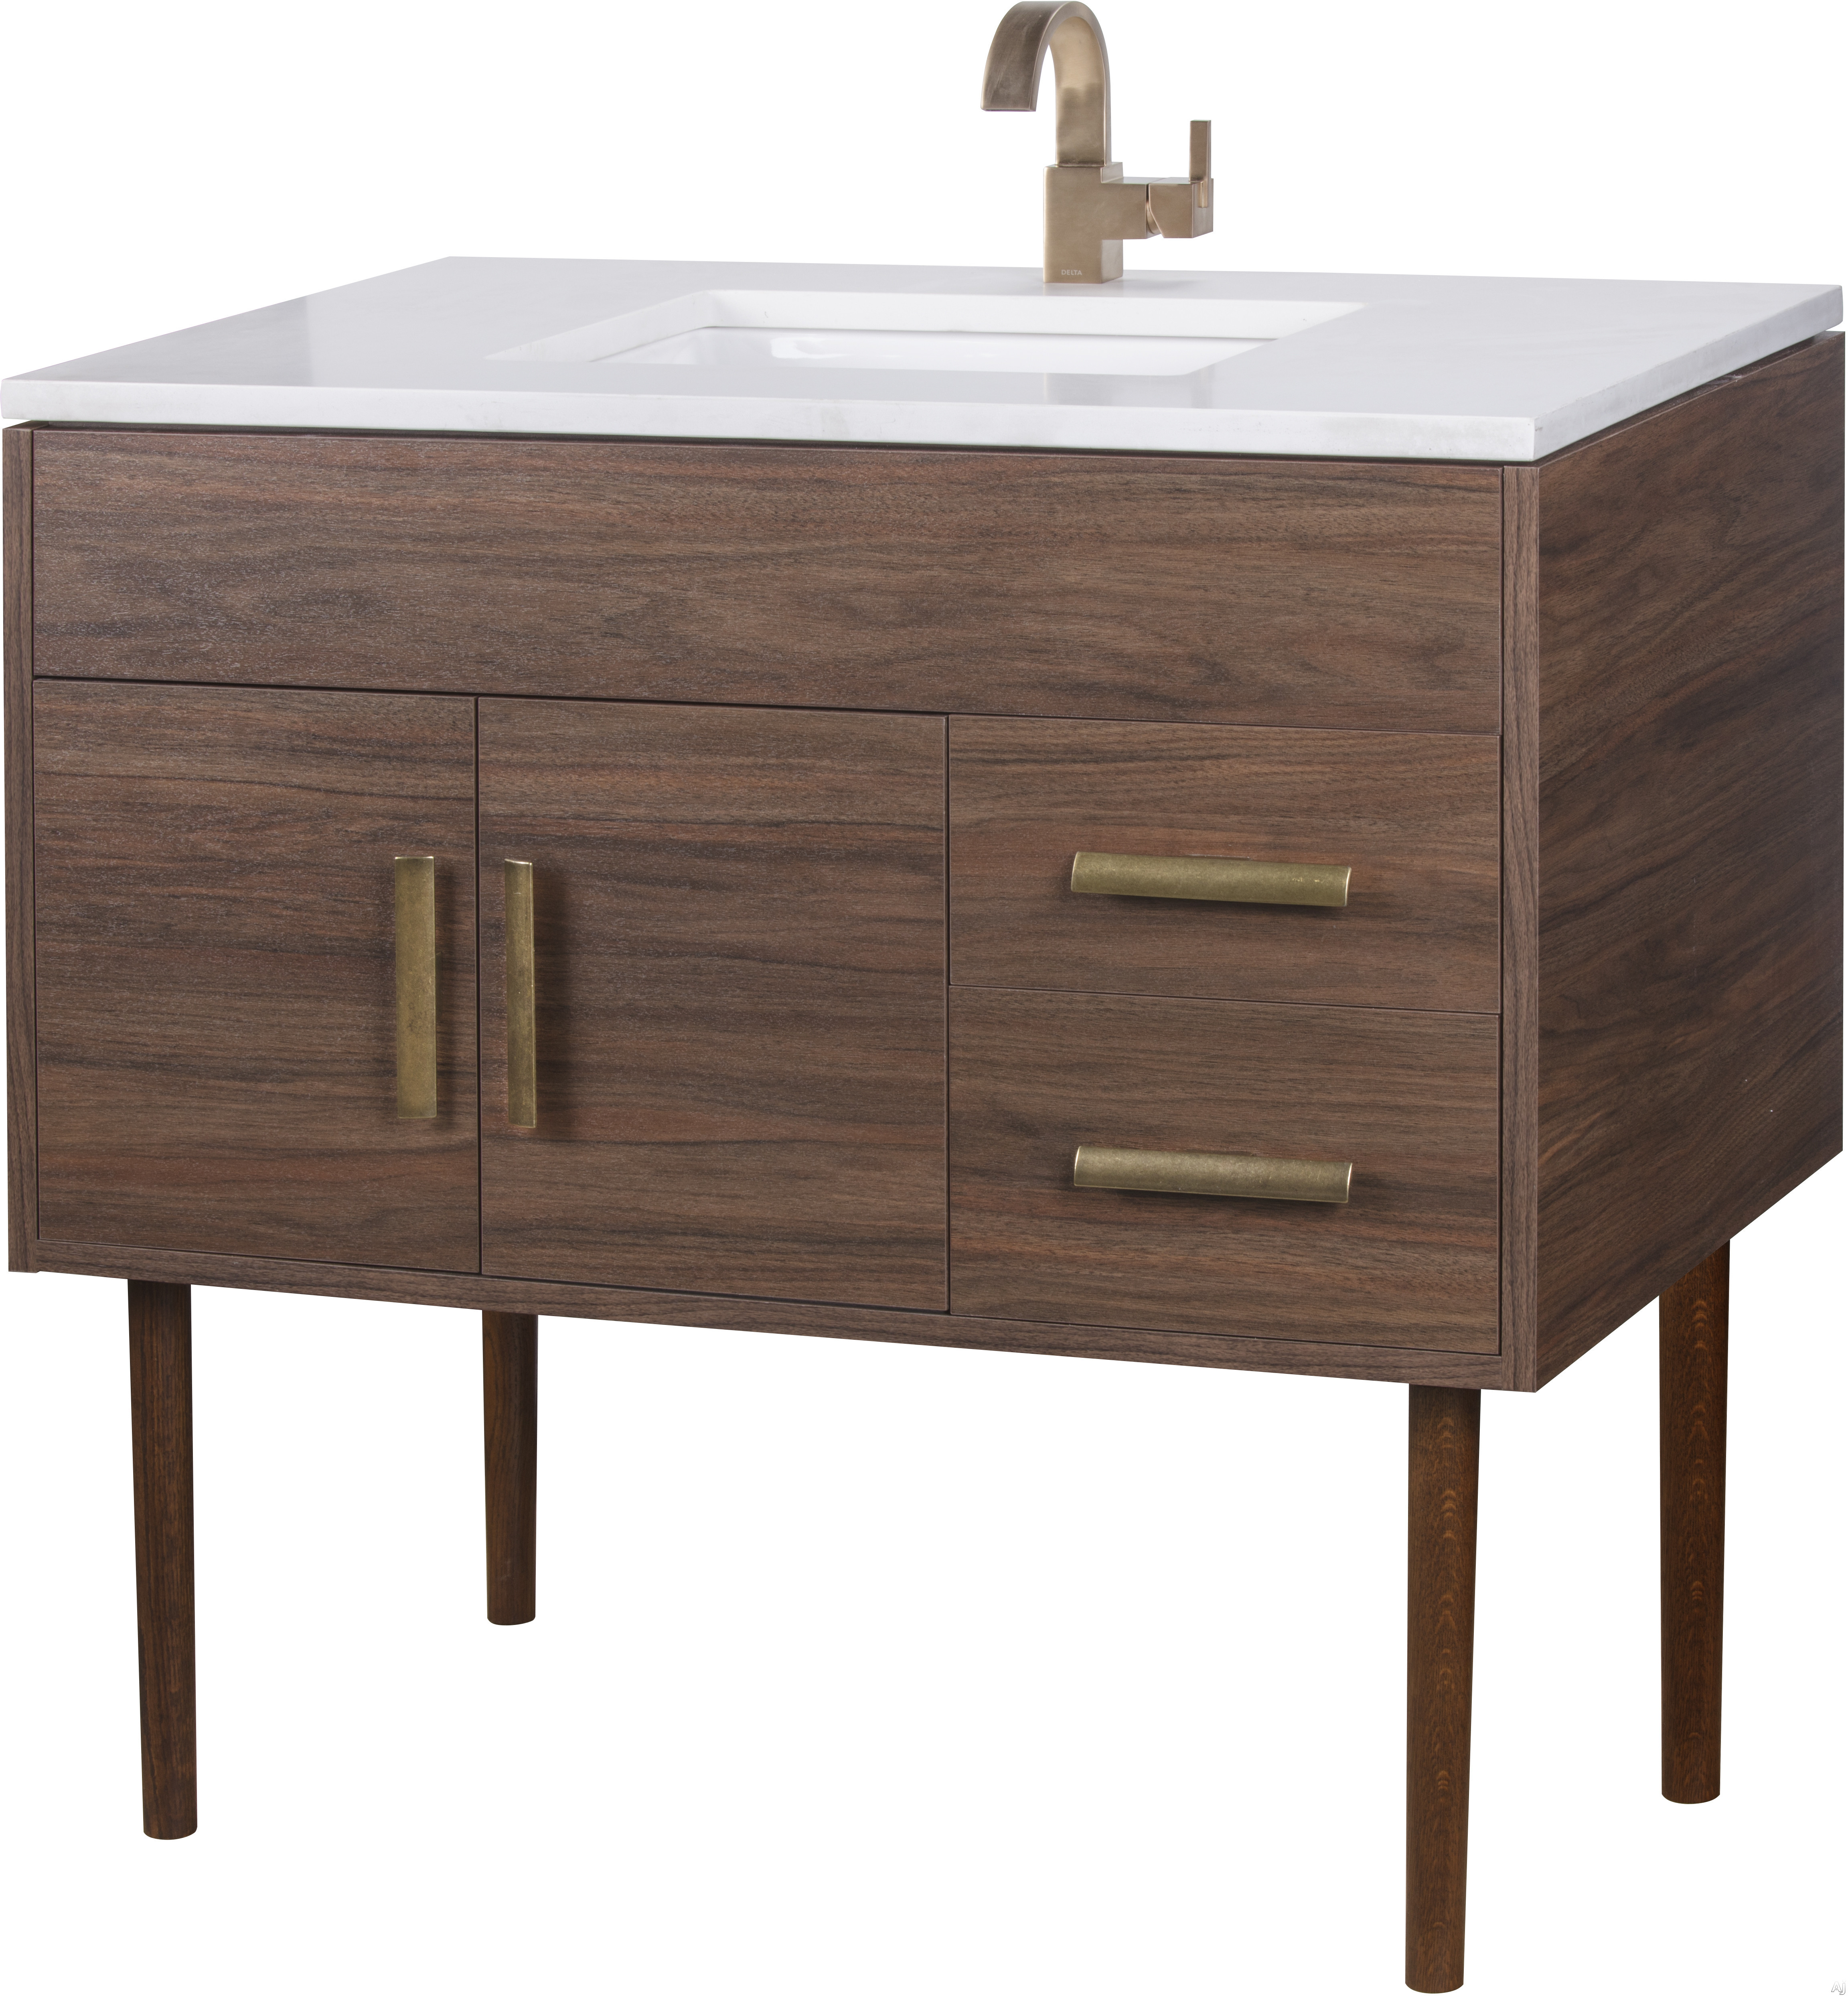 Cutler Kitchen & Bath Garland MIDCNT36 36 Inch Freestanding Bathroom Vanity with 2 Soft Close Doors, Countertop and Sink and European Soft-Close Hardware